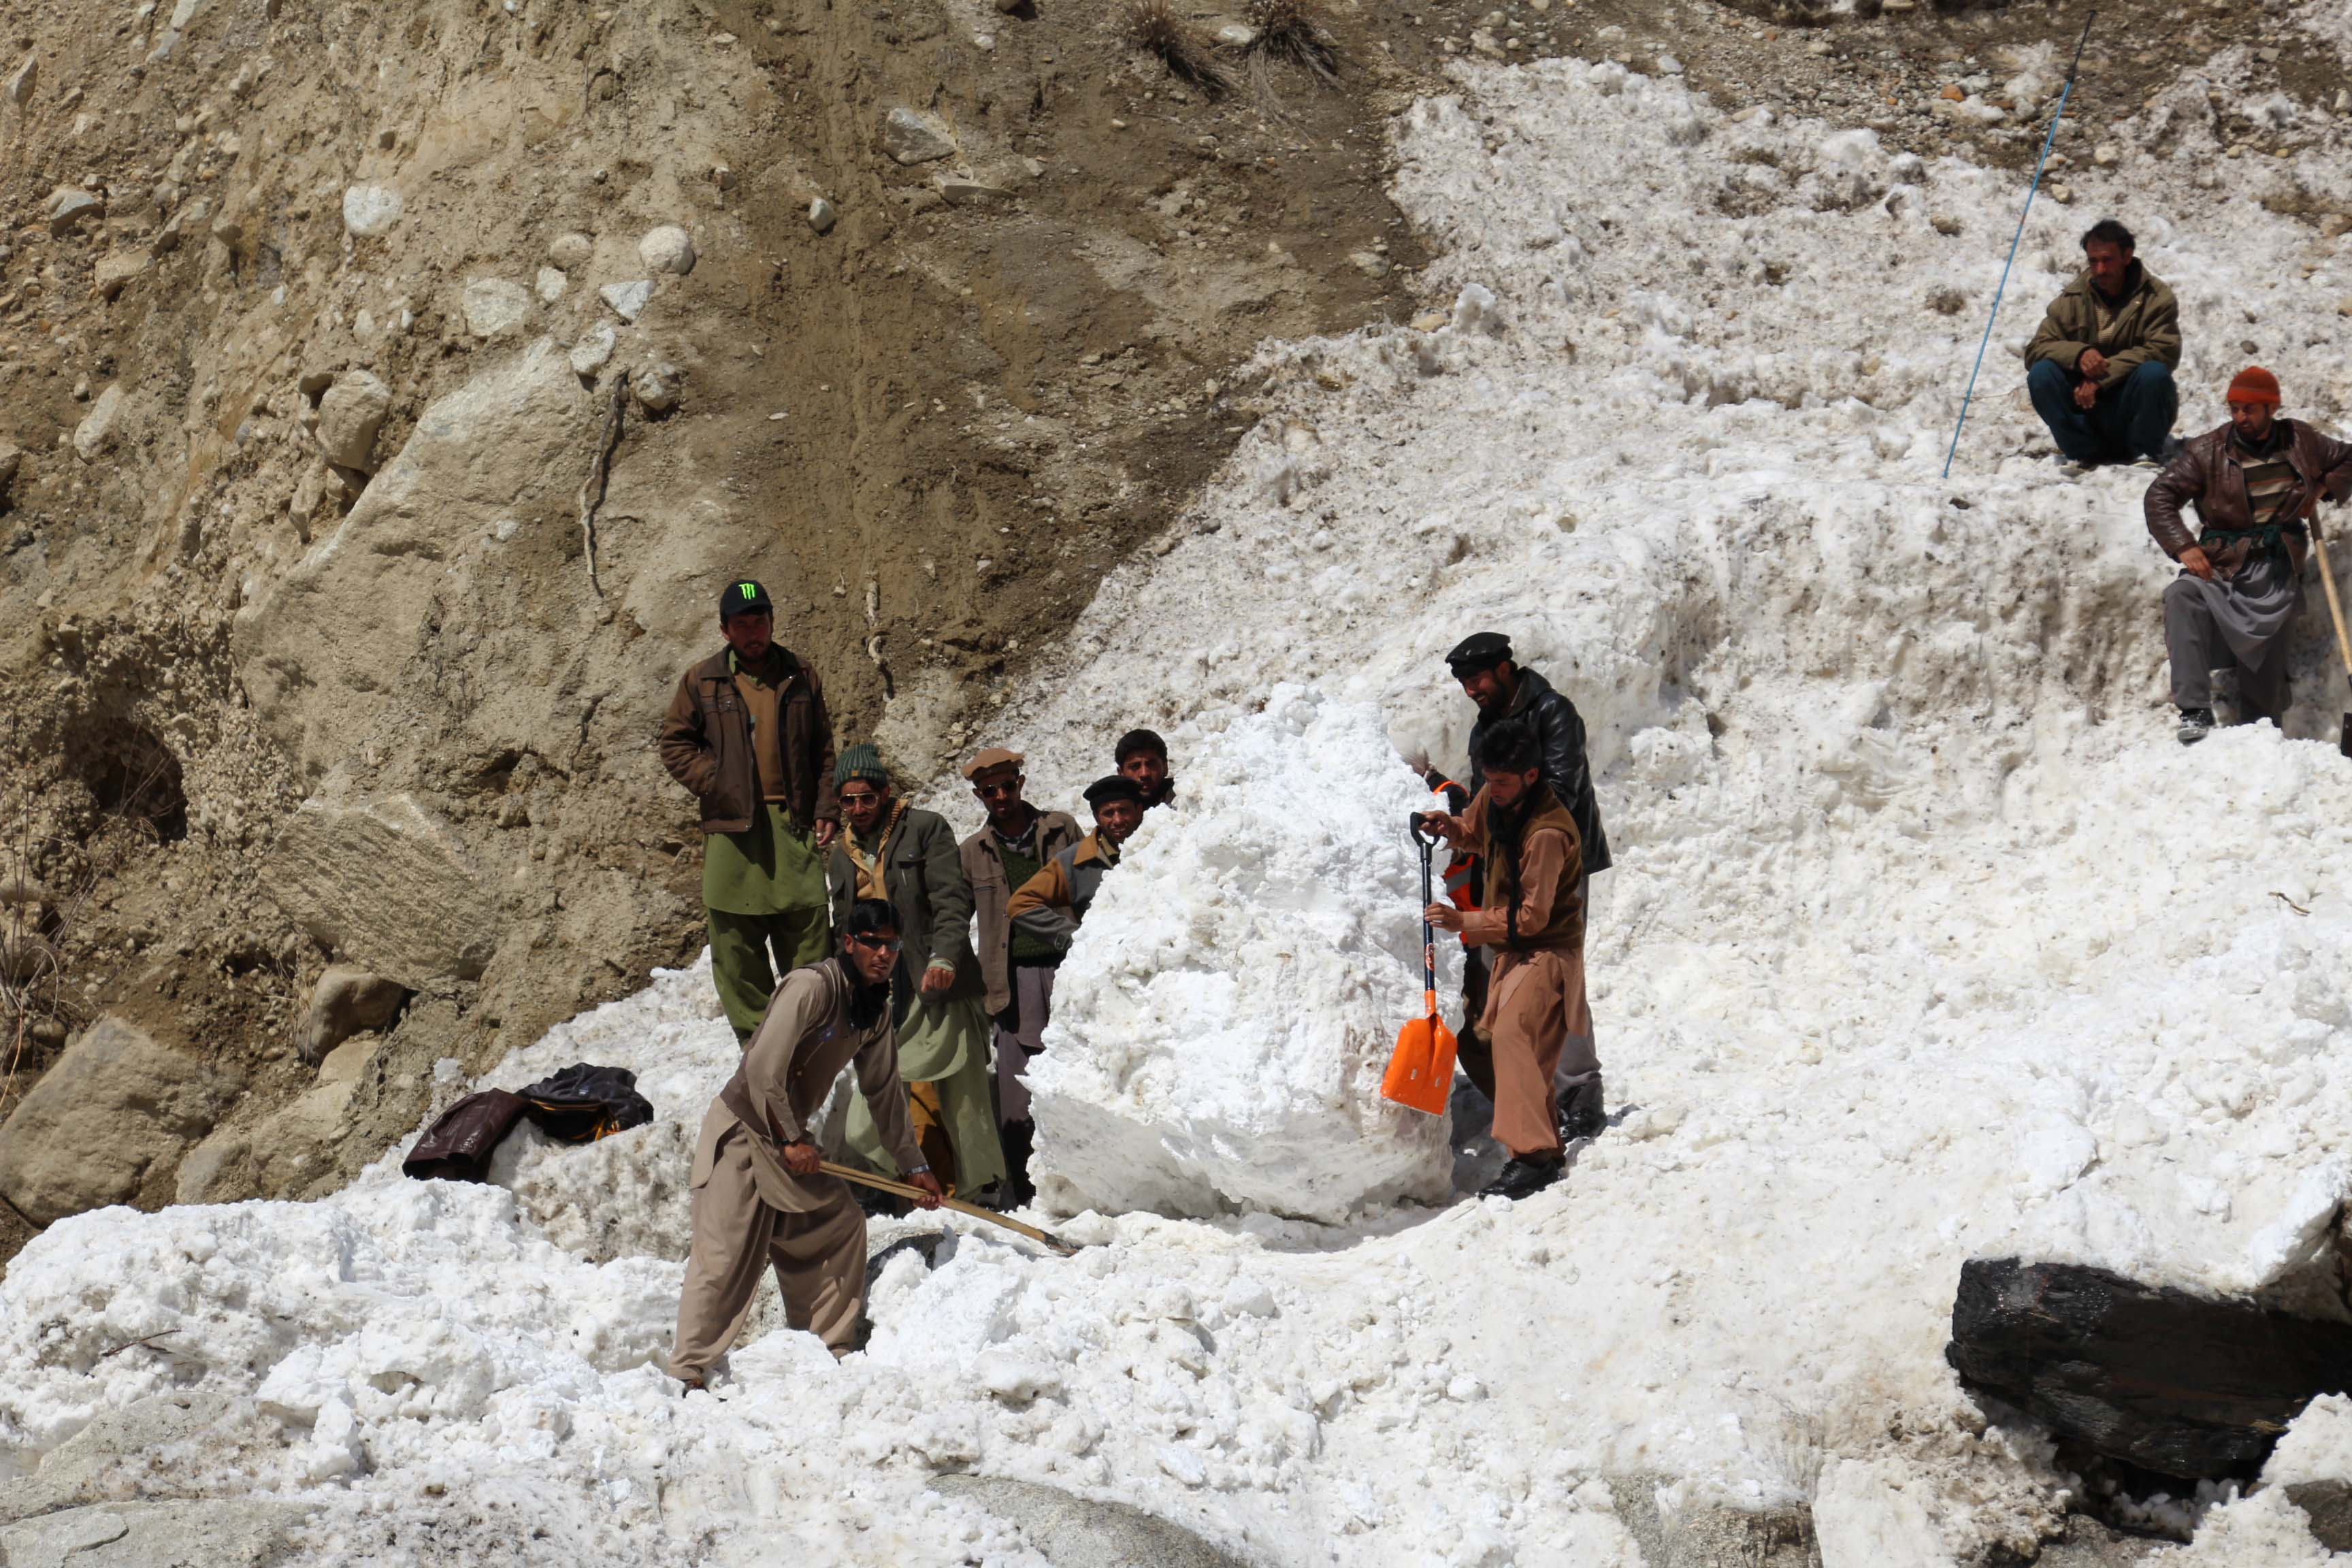 Chitral: Search for bodies continues without much success